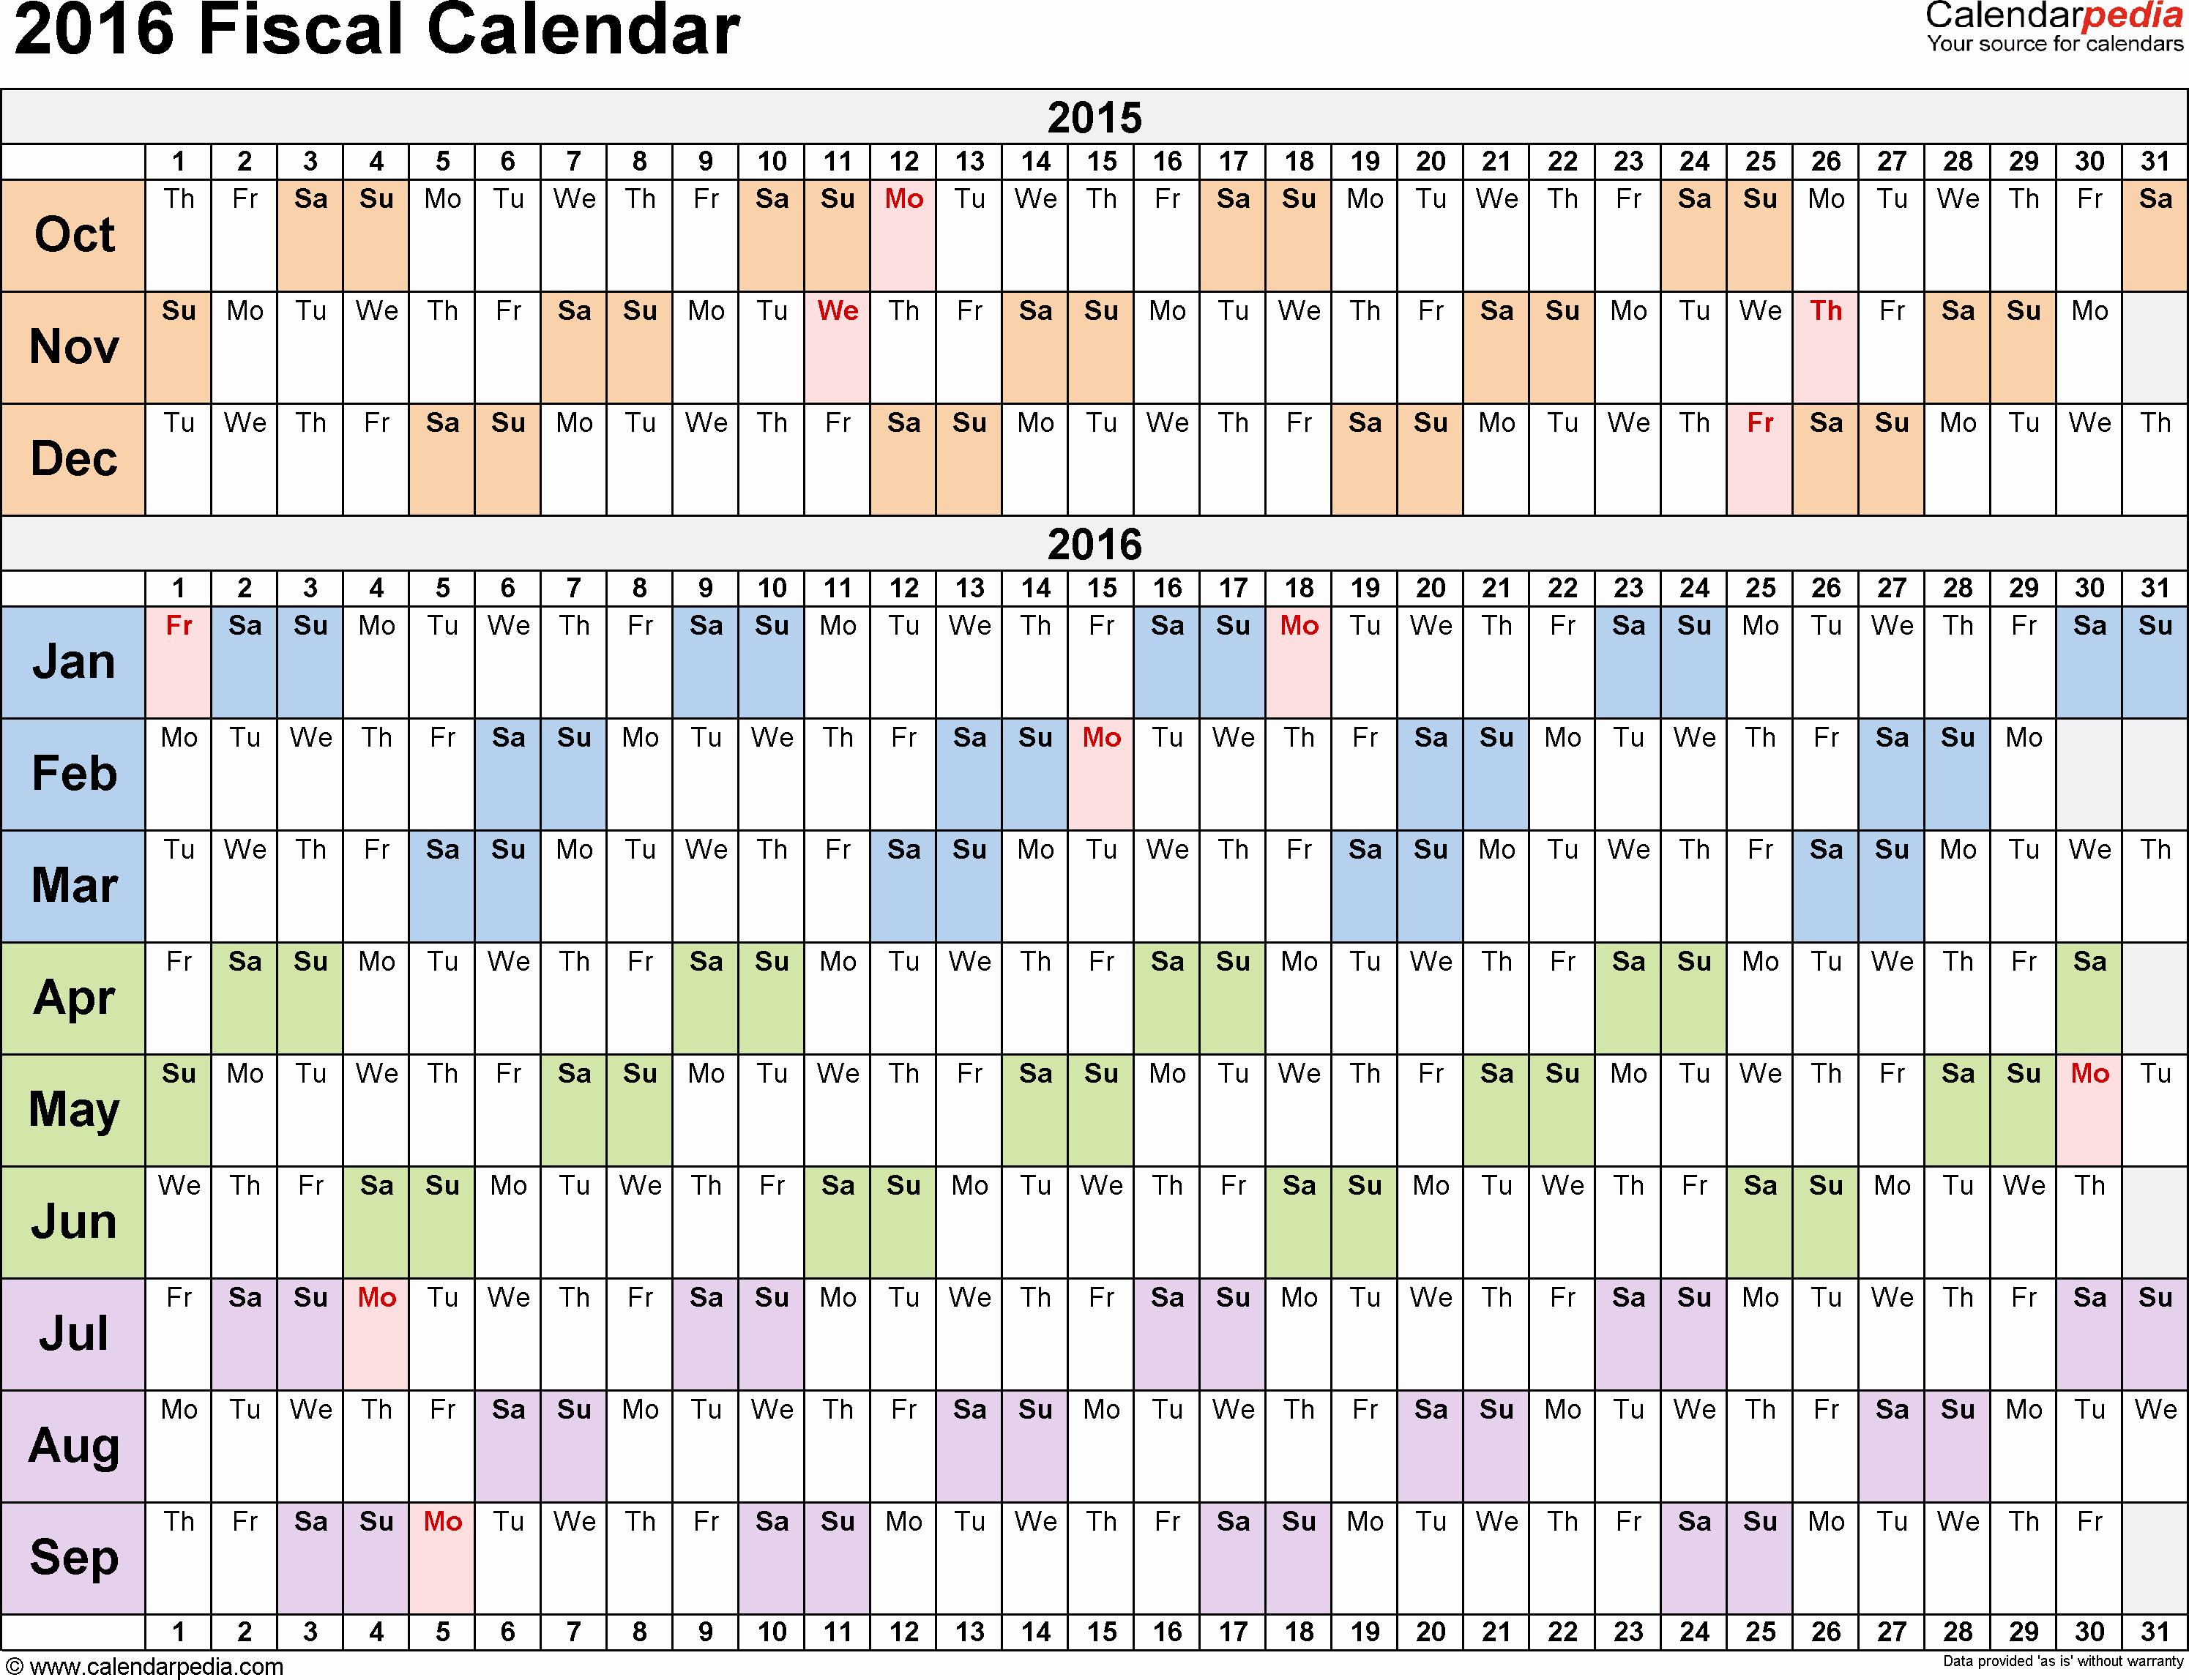 Calendar One Day Per Page Fresh Fiscal Calendars 2016 as Free Printable Pdf Templates